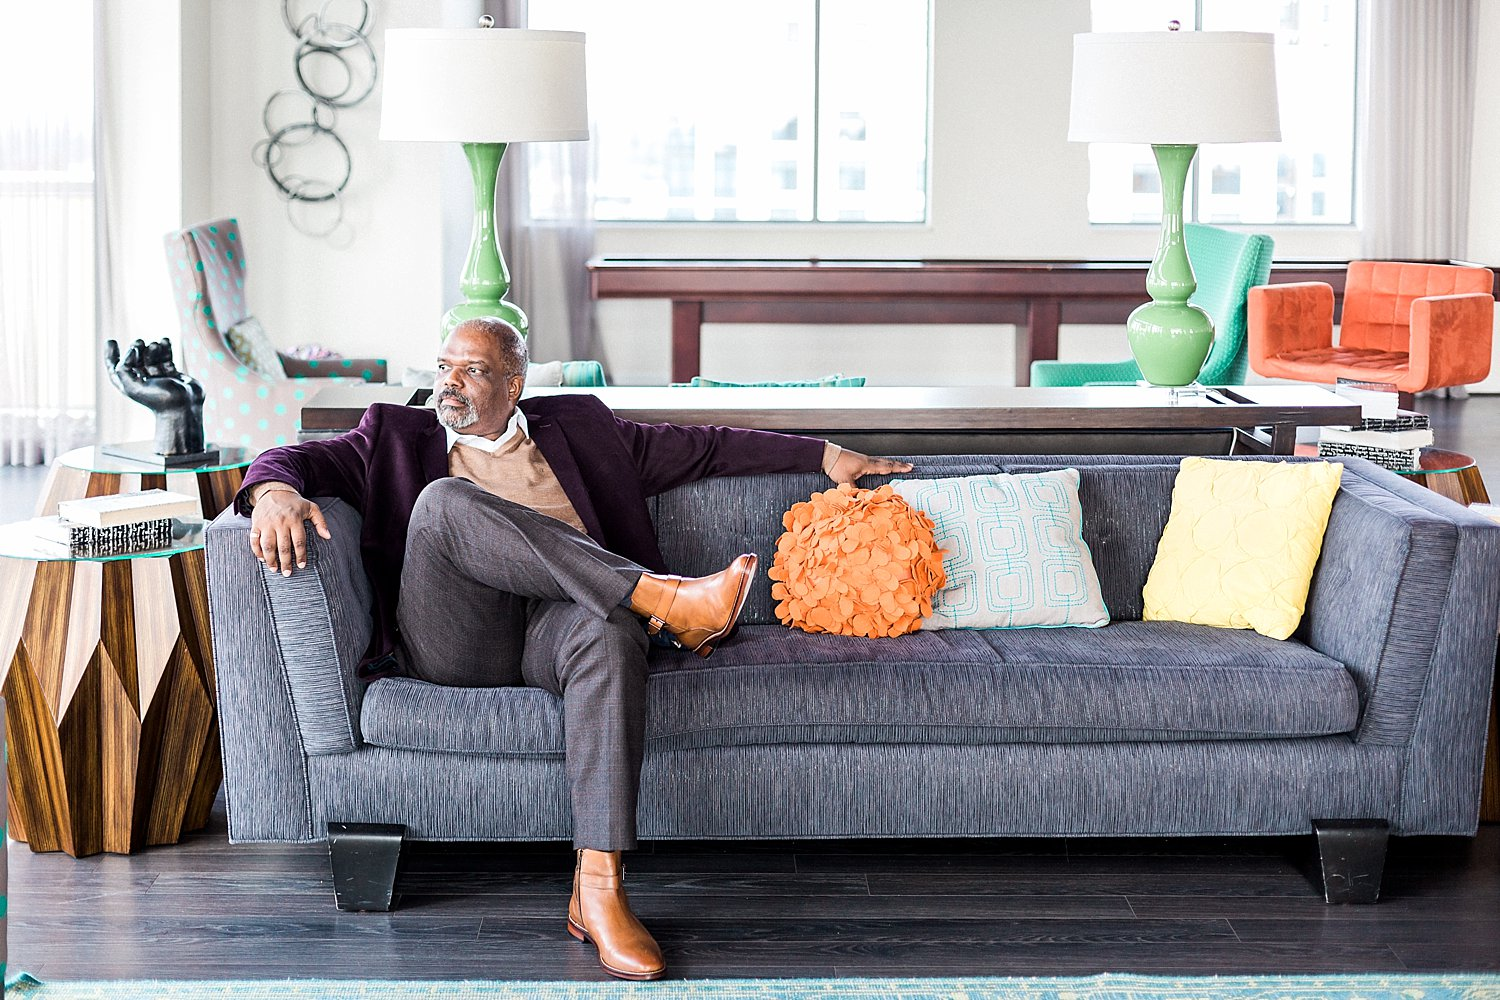 Casual lifestyle image of book writer sitting on a couch with colorful cushions